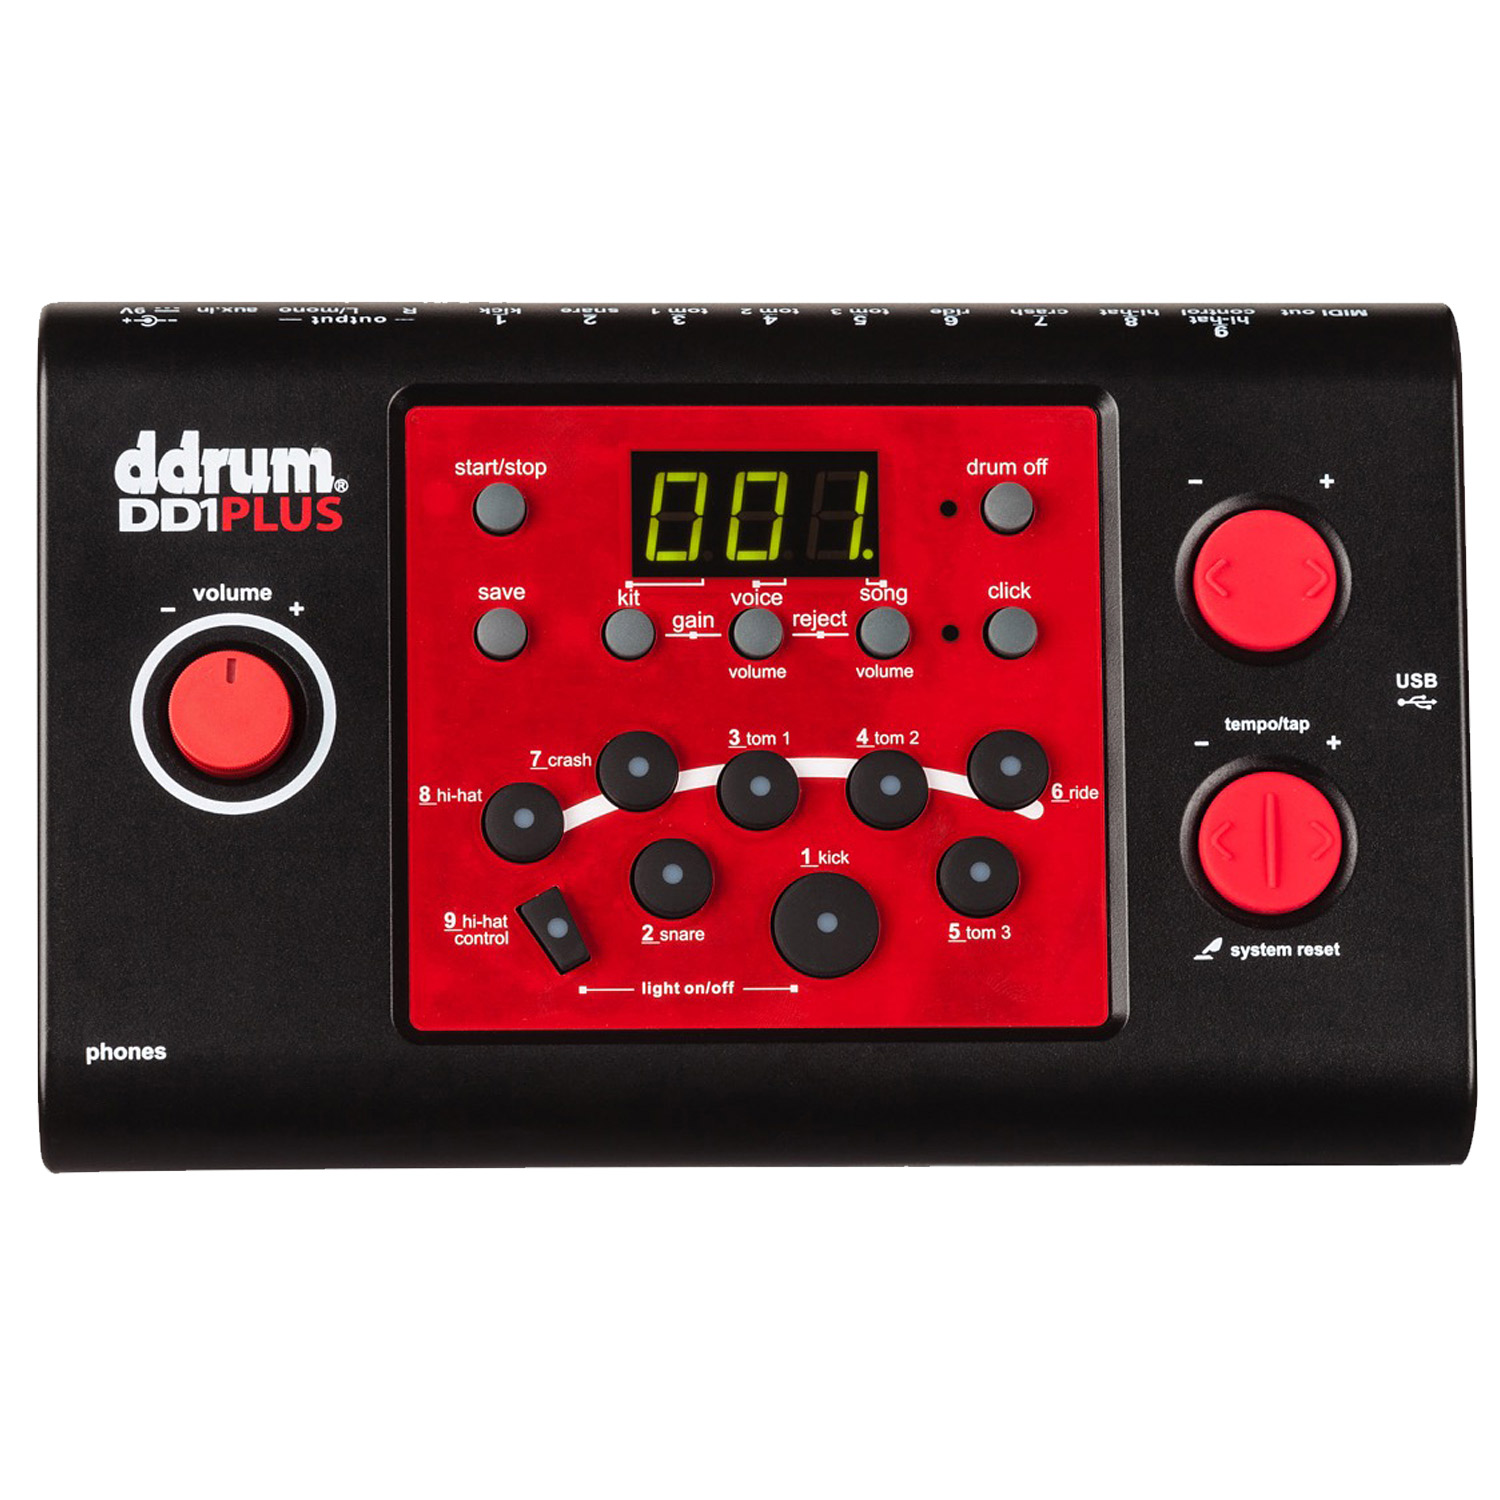 ddrum DD1M PLUS Electronic Drum Module by ARMADILLO